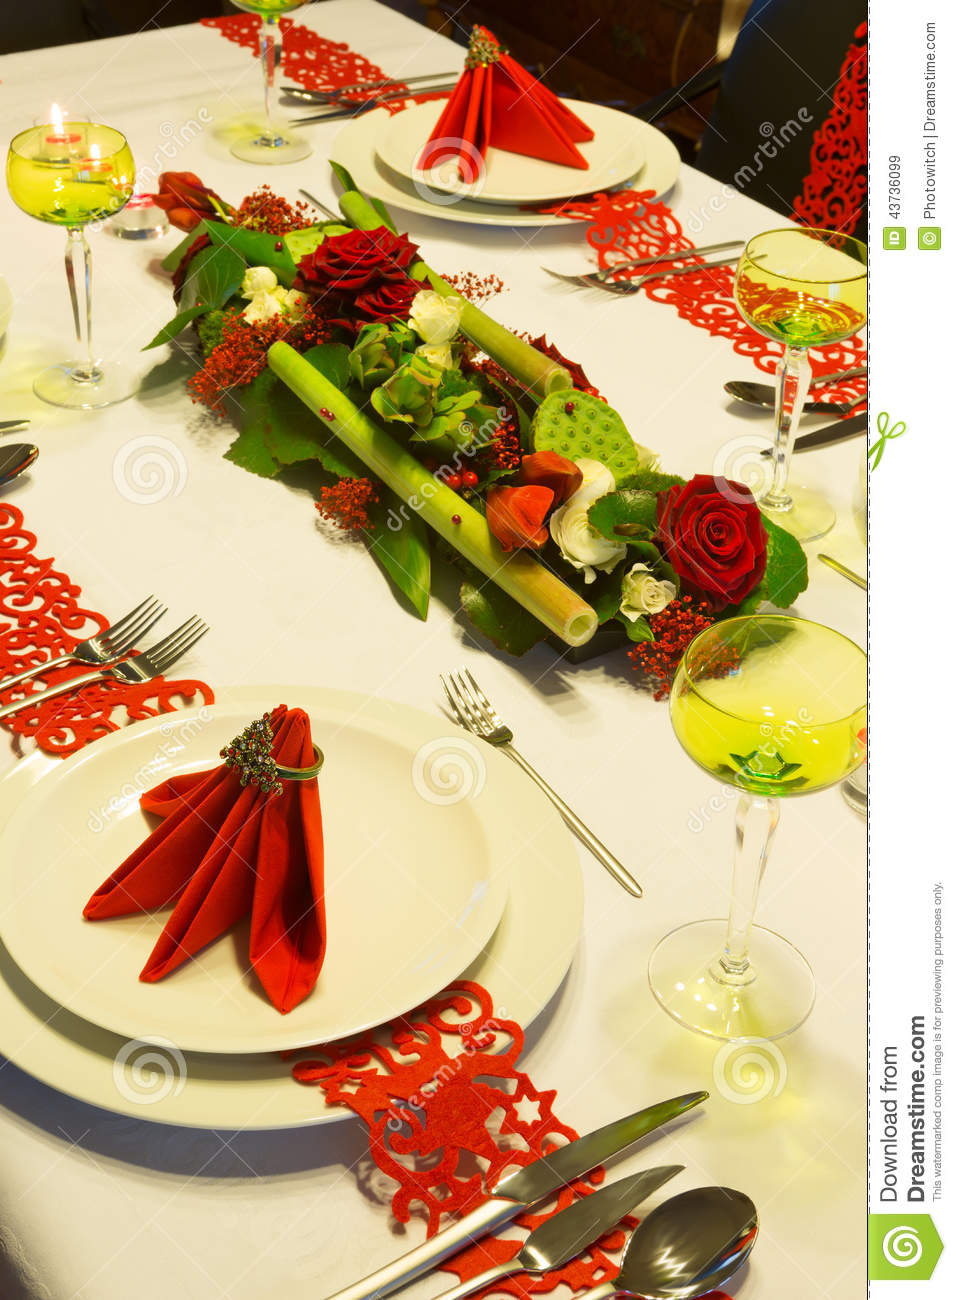 Deco florale table de noel